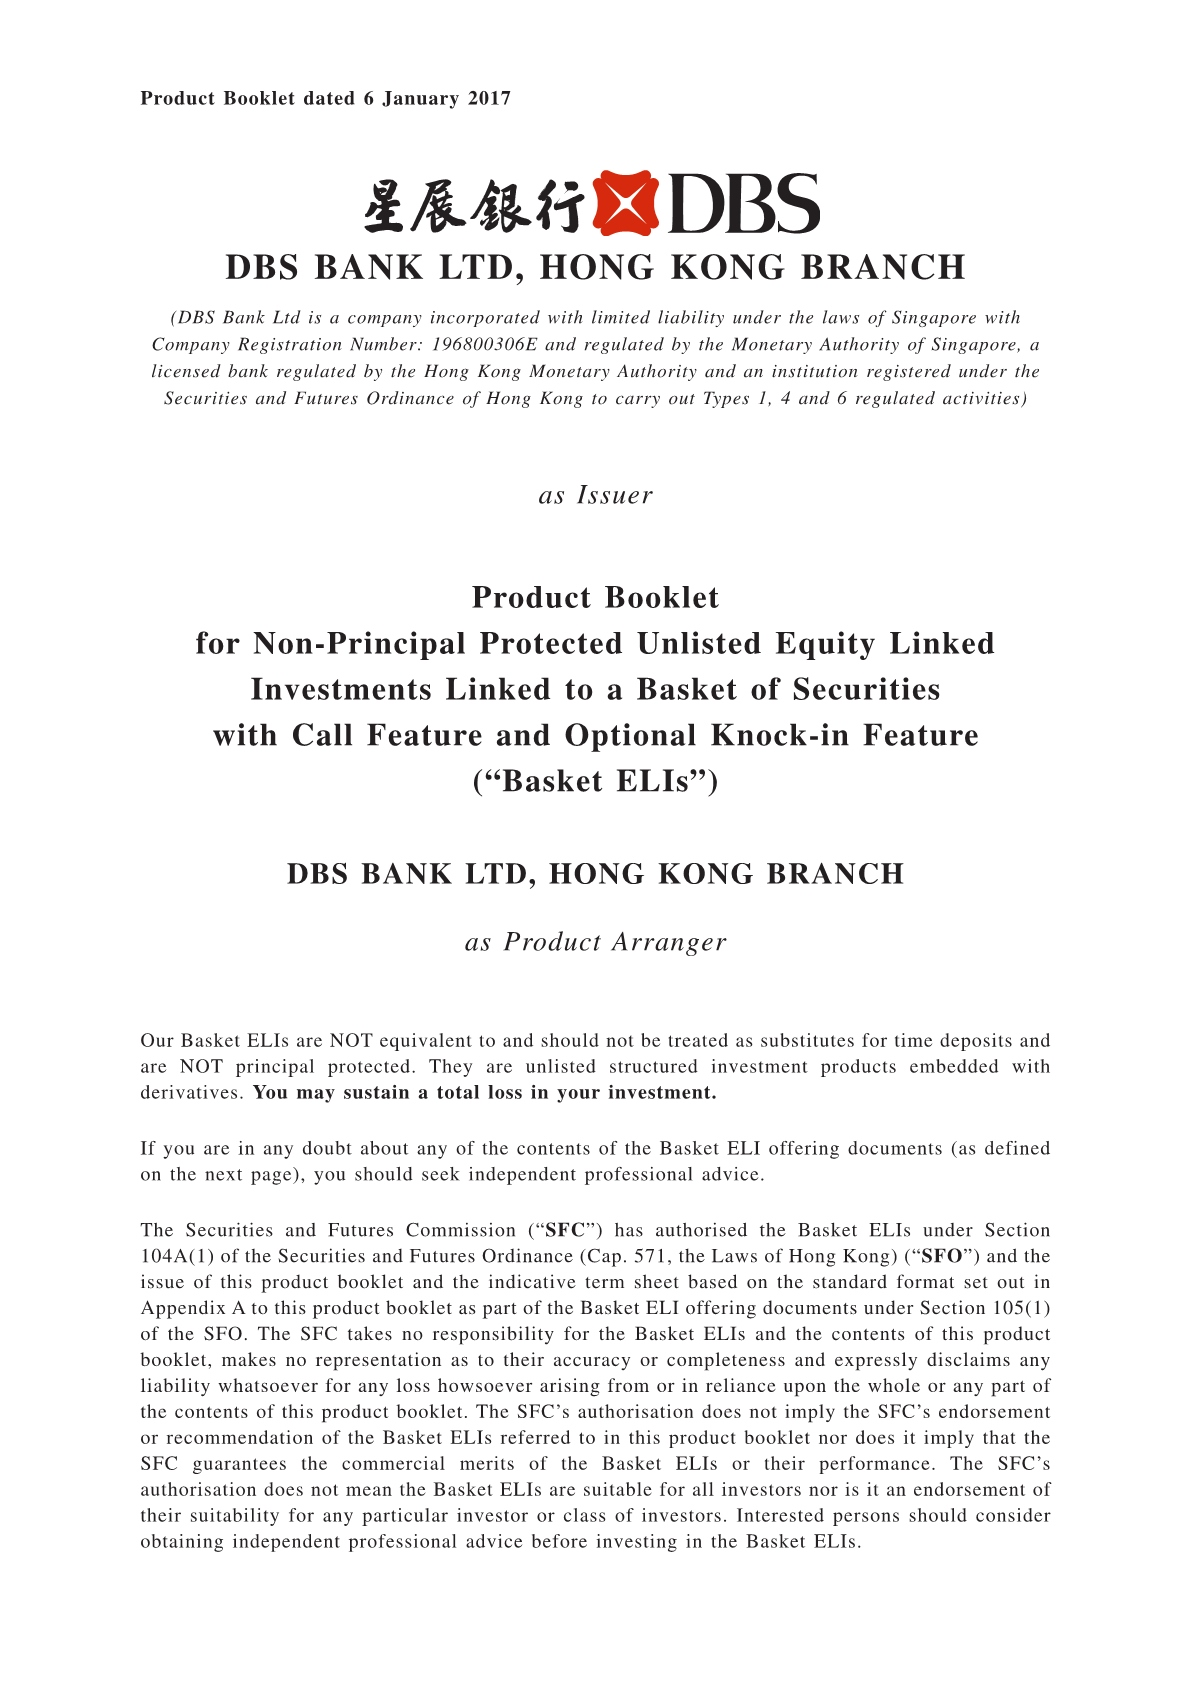 DBS Bank Ltd, Hong Kong Branch – Product Booklet (Basket ELIs)